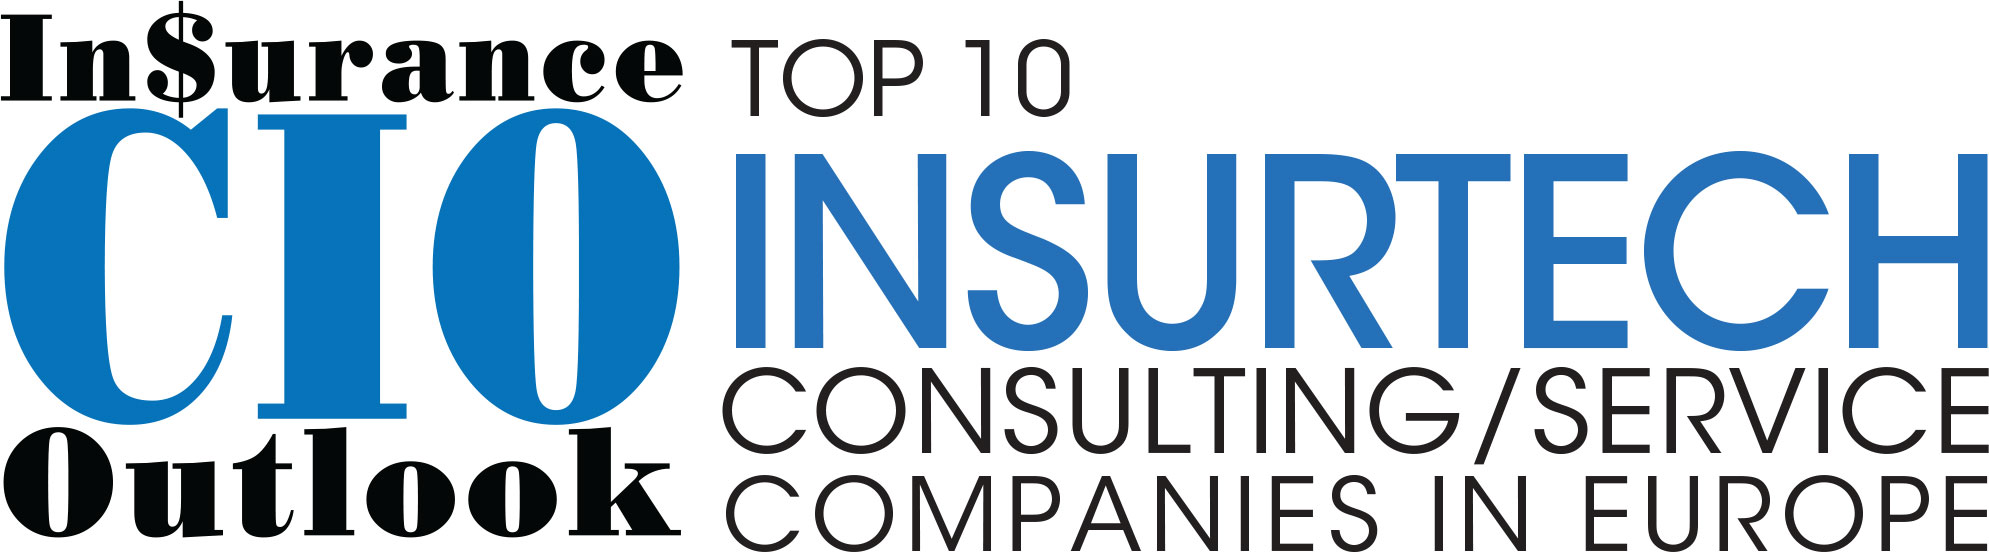 Top 10 Insurtech Consulting/Service Companies in Europe - 2019